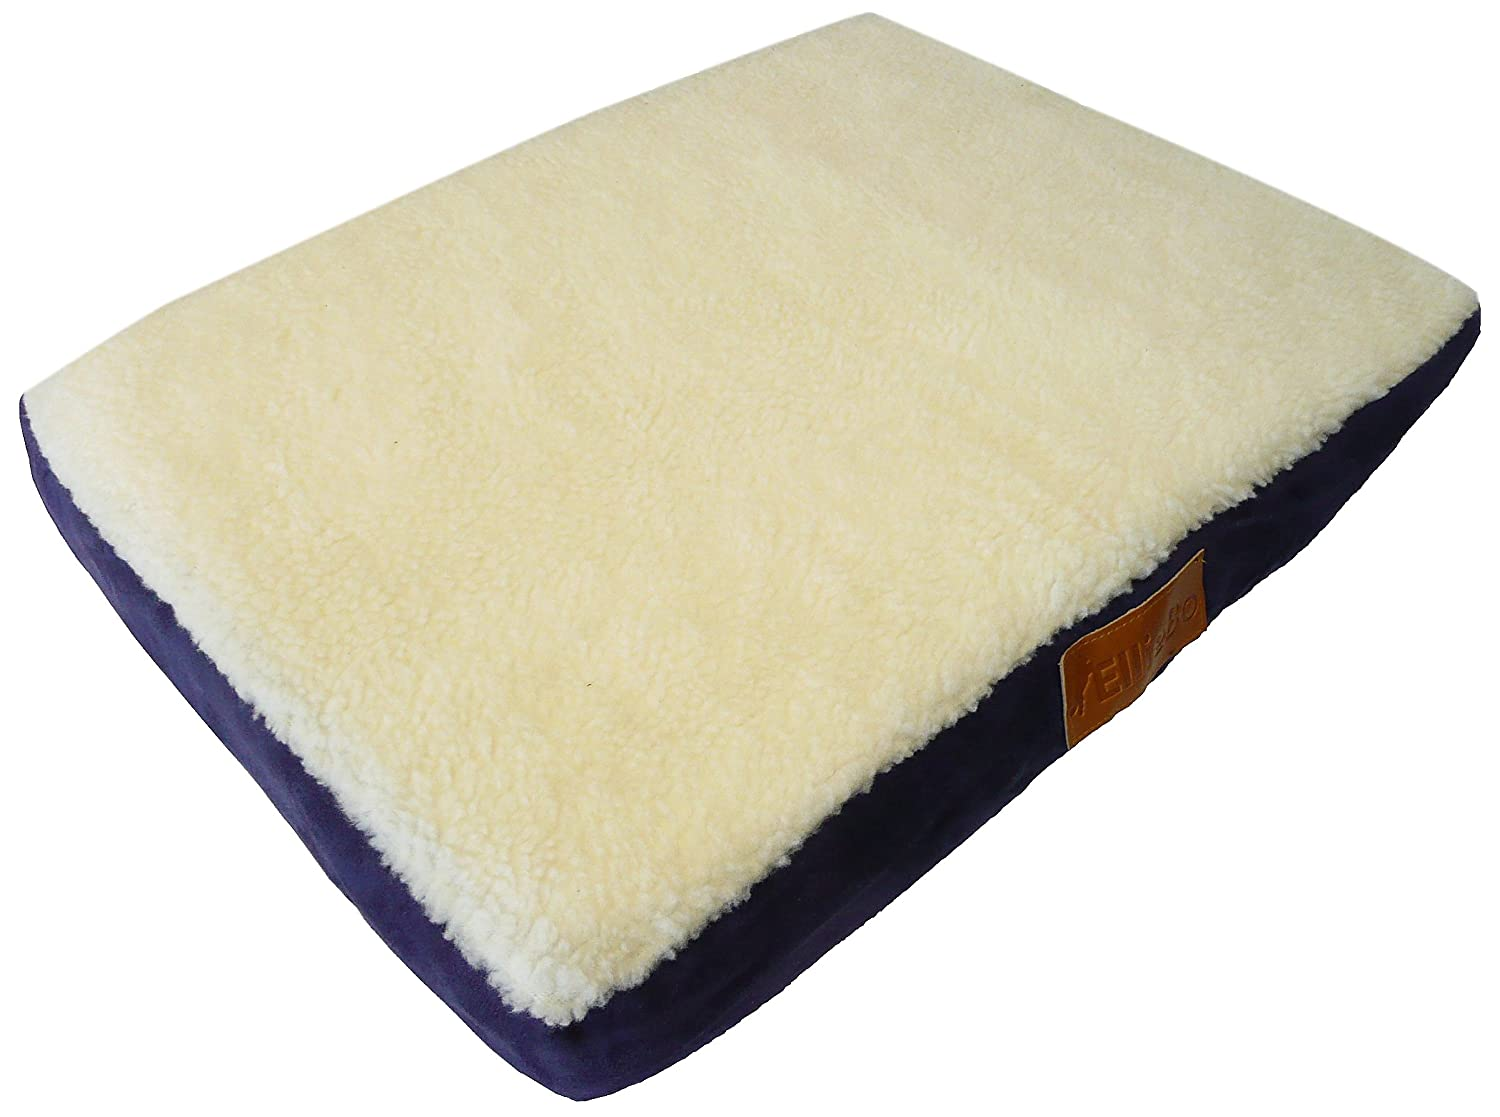 Ellie-Bo Memory Foam Orthopedic Dog Bed with Faux Suede and Sheepskin  Topping for Dog Cage/ Crate Large 36-inch Brown: Amazon.co.uk: Pet Supplies